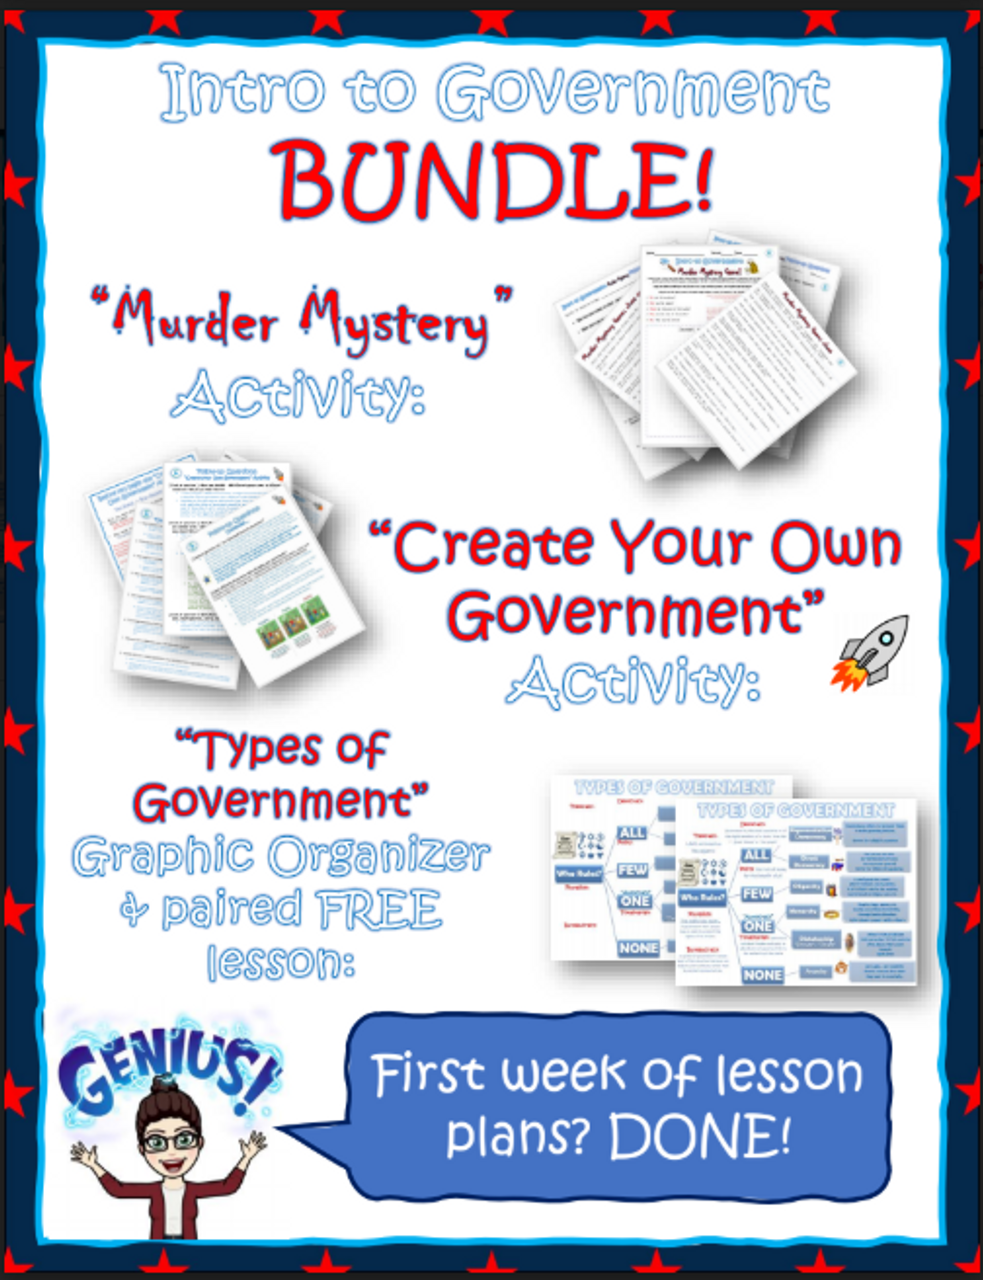 Create Your Own Government Activity: types of governments introduction